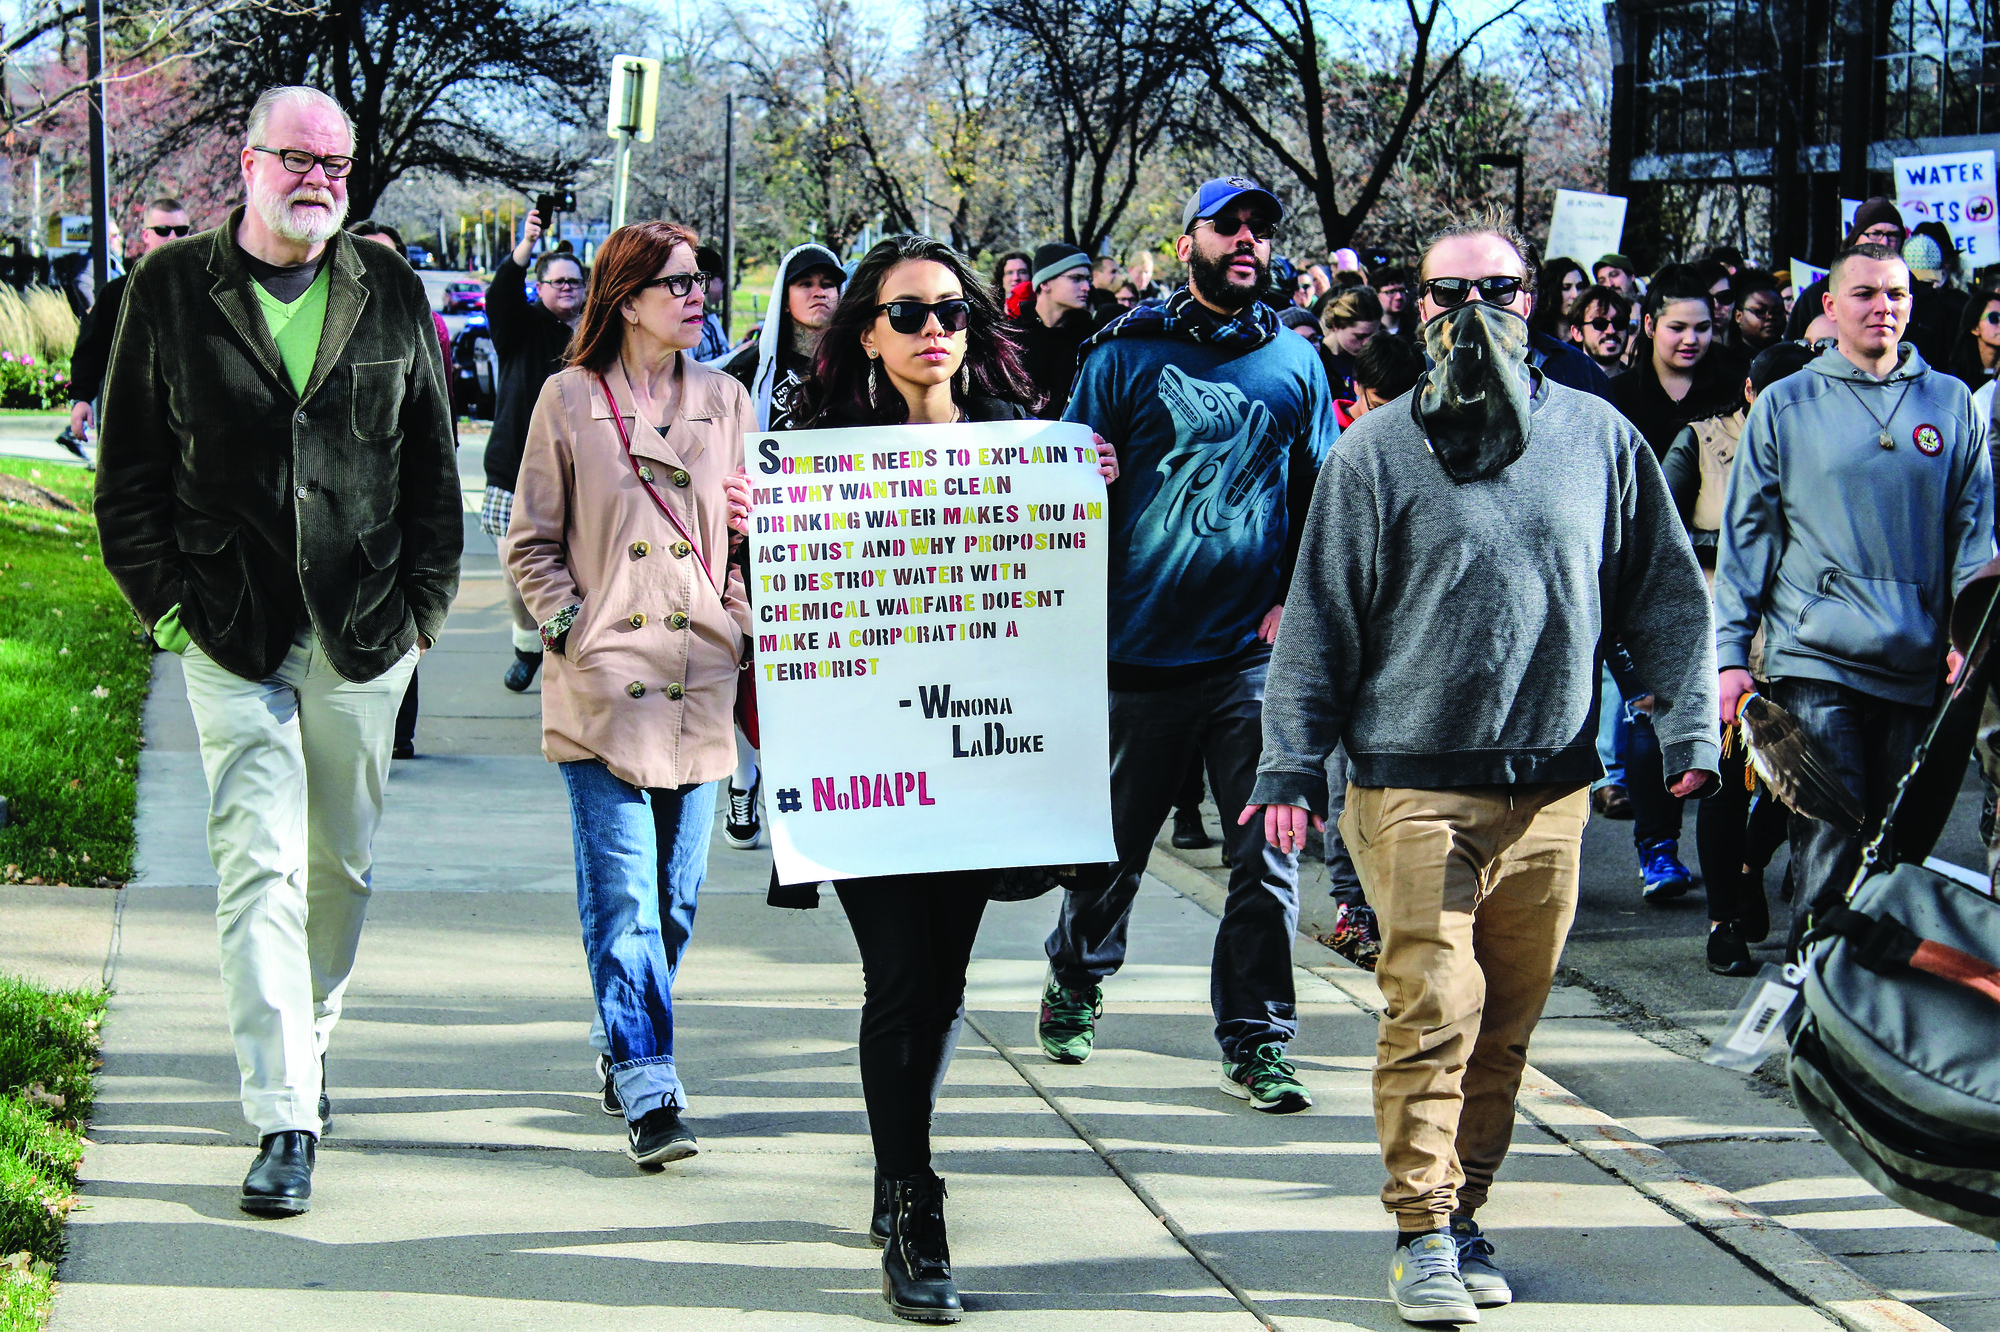 Anti-pipeline protesters march through South Minneapolis